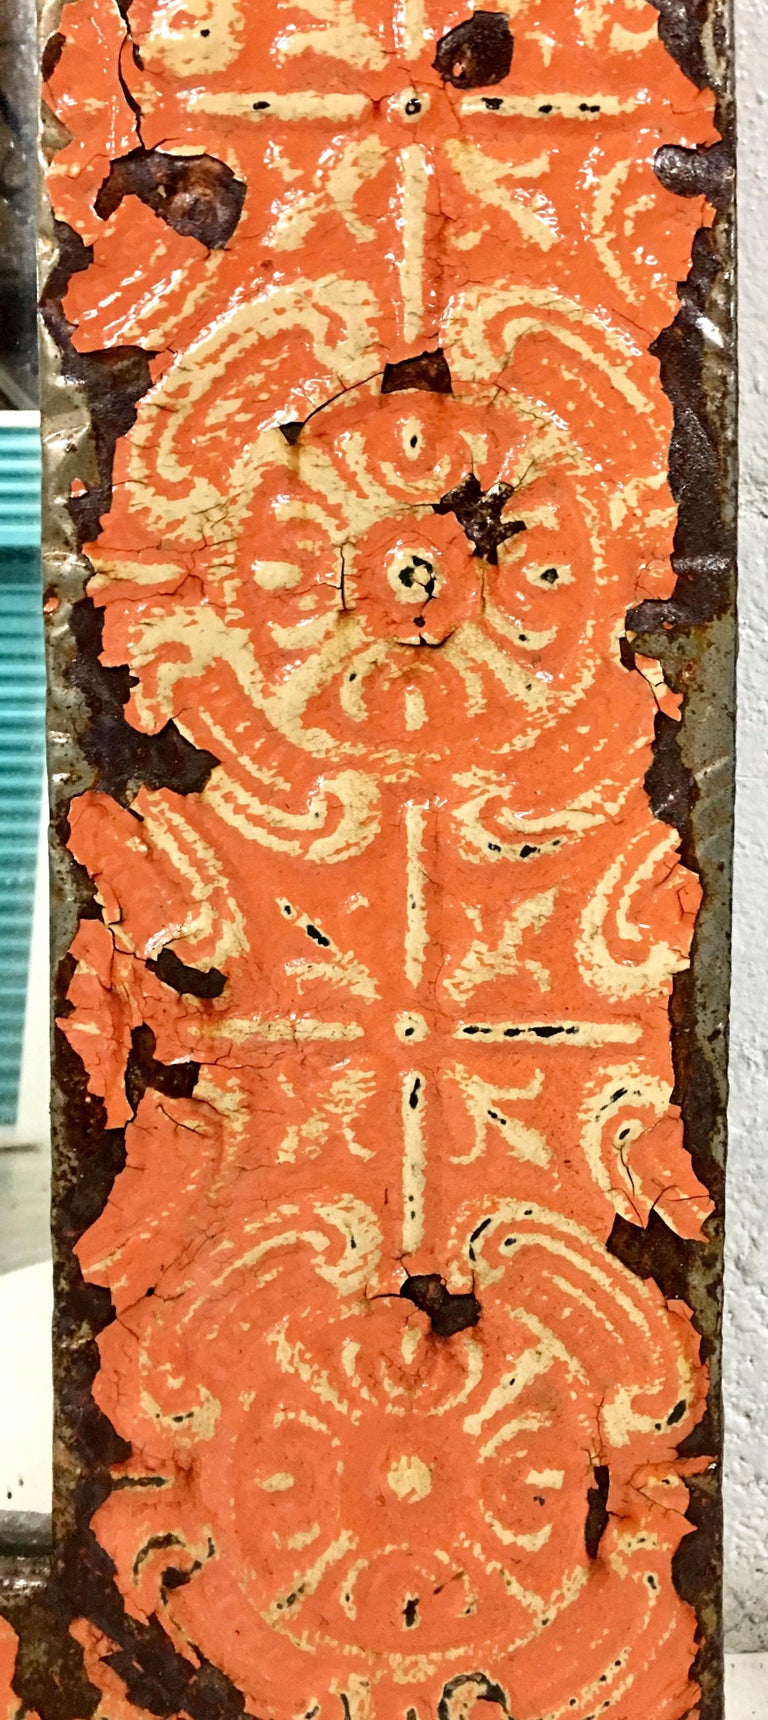 A Pair Of Antique Copper Ceiling Tile Framed Mirrors-New York City For Sale 3